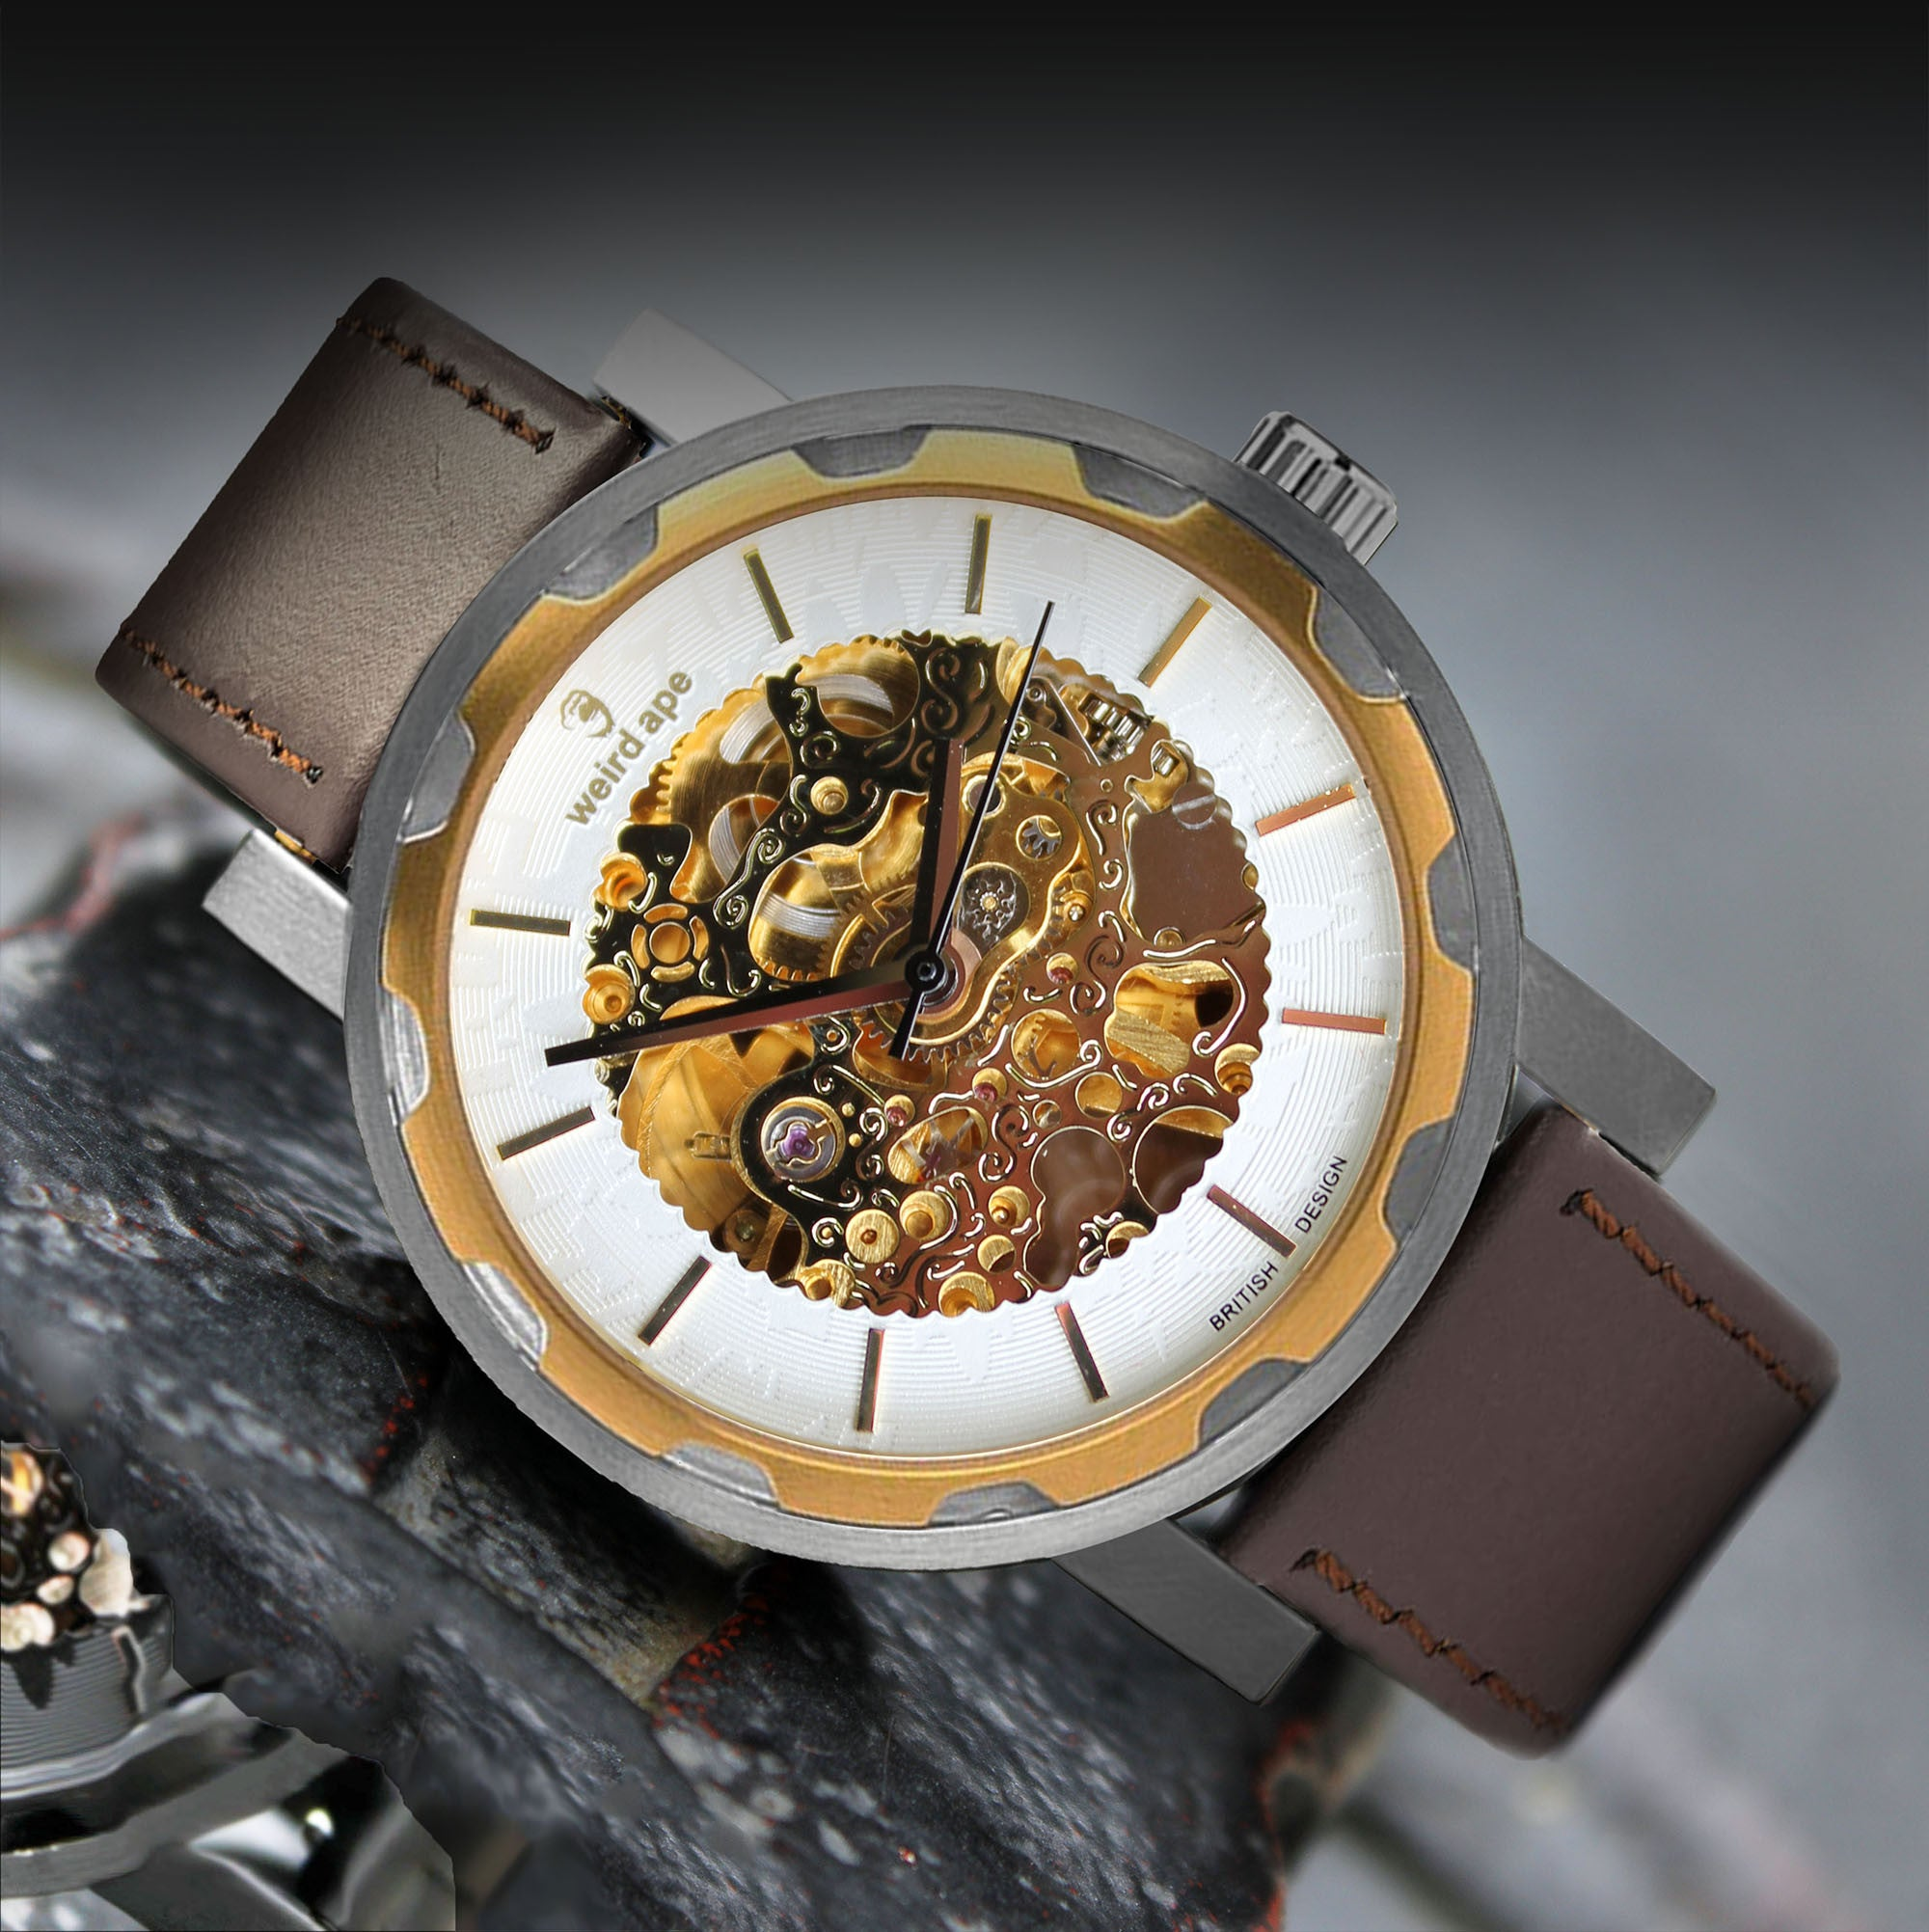 A picture of a gold mechanical watch with a brown leather strap.